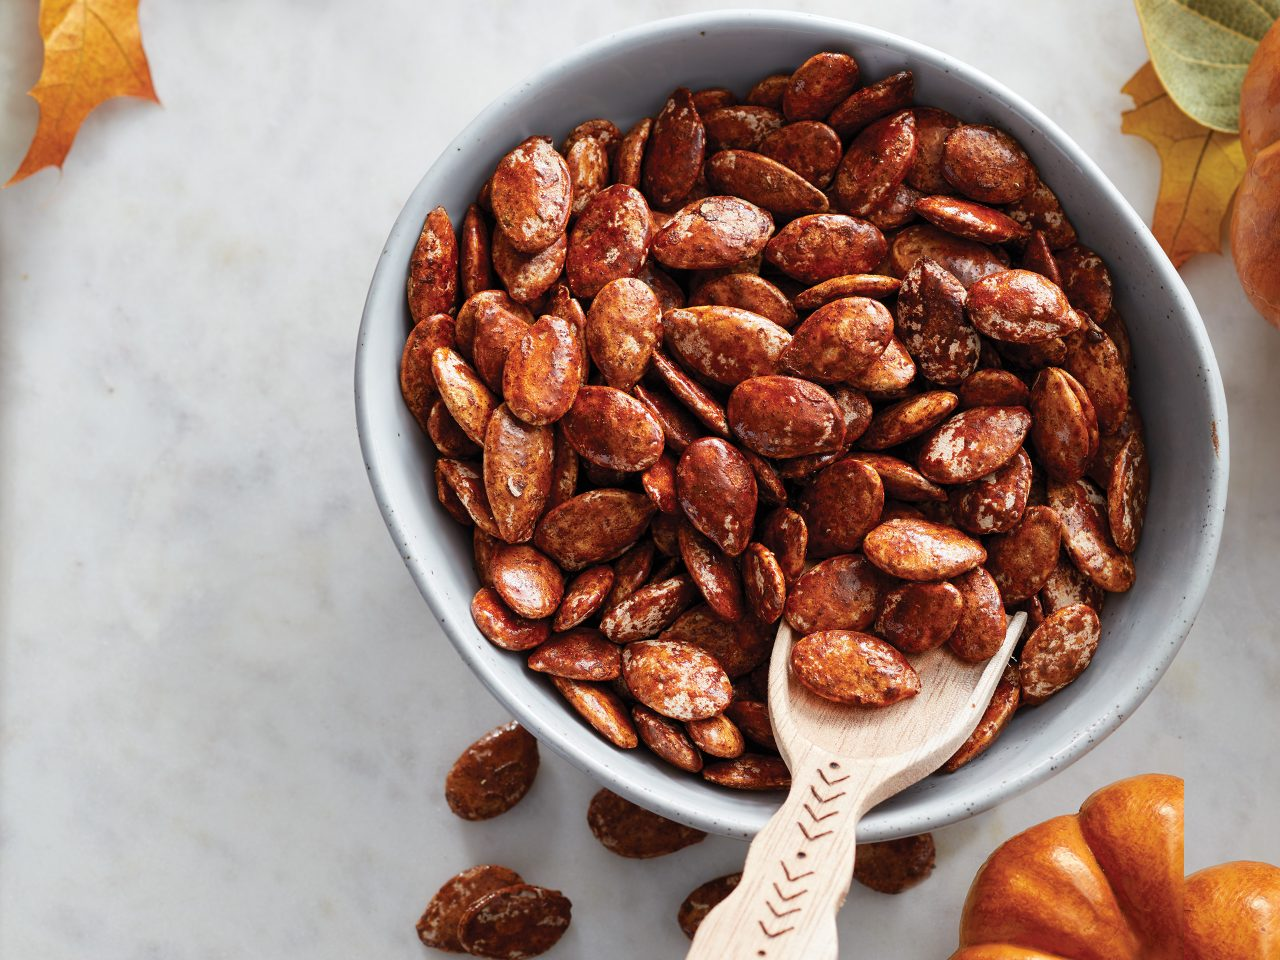 Cinnamon-Maple Roasted Pumpkin Seeds